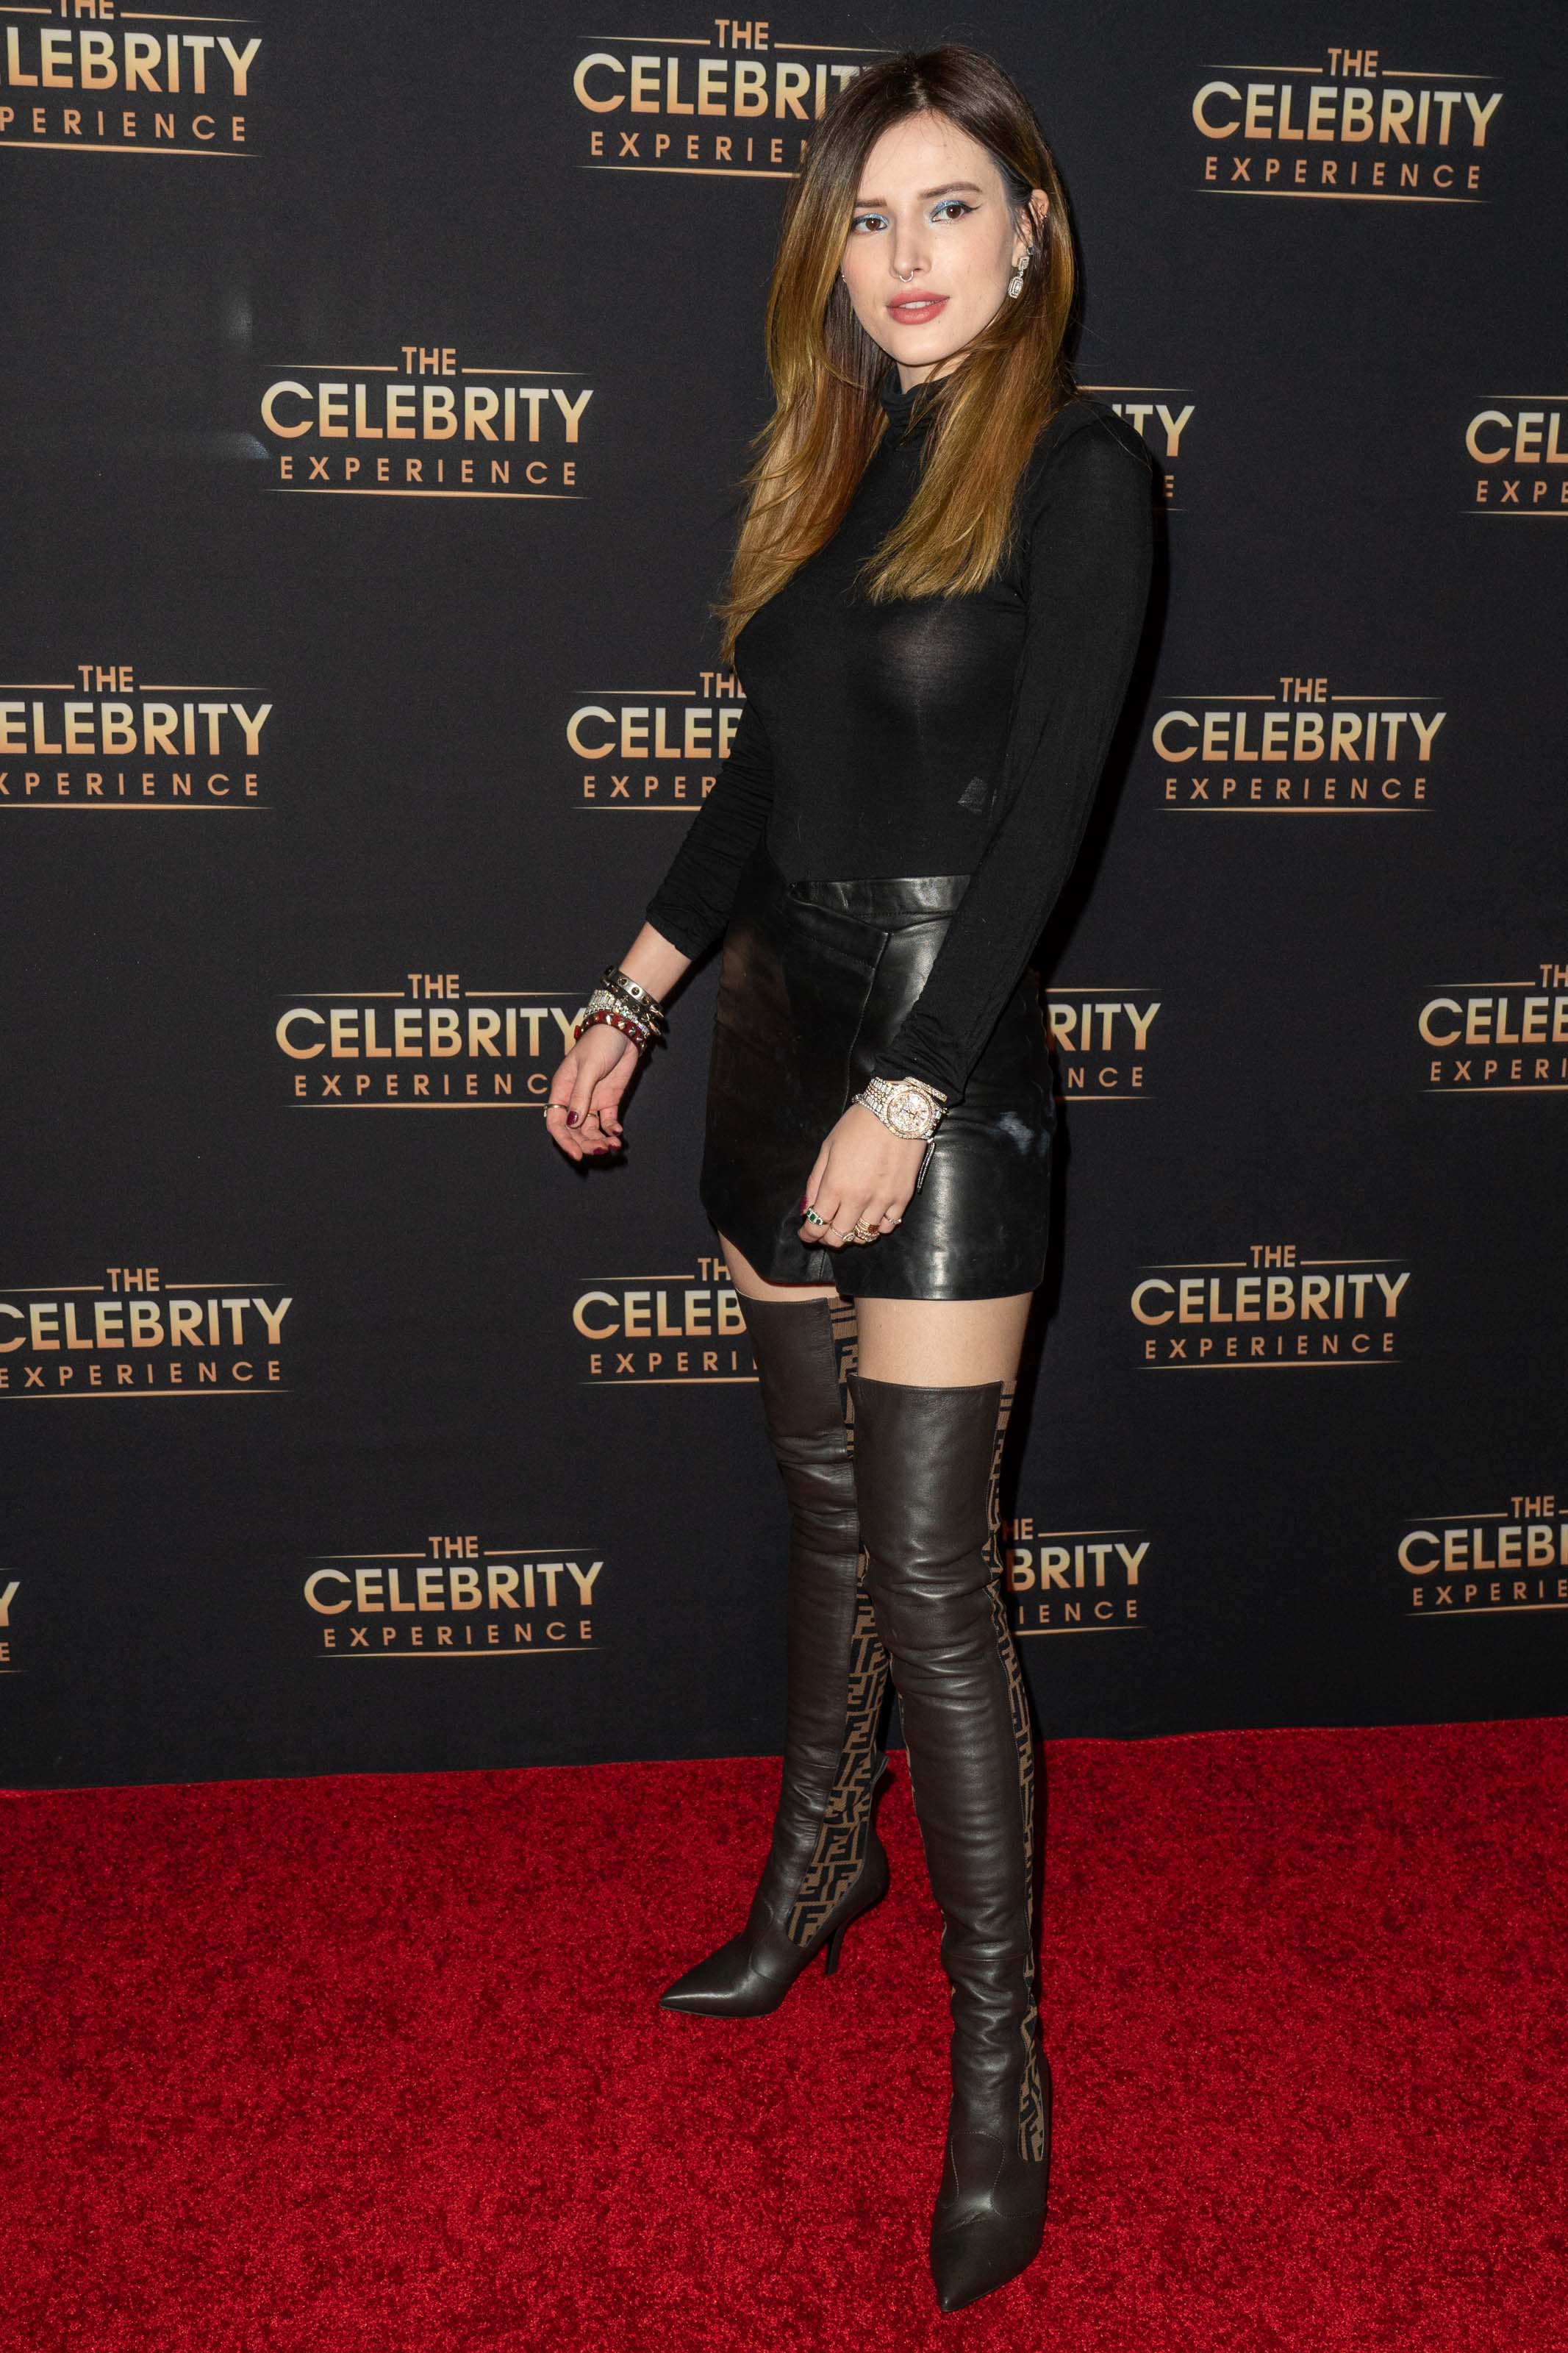 Bella Thorne attends The Celebrity Experience